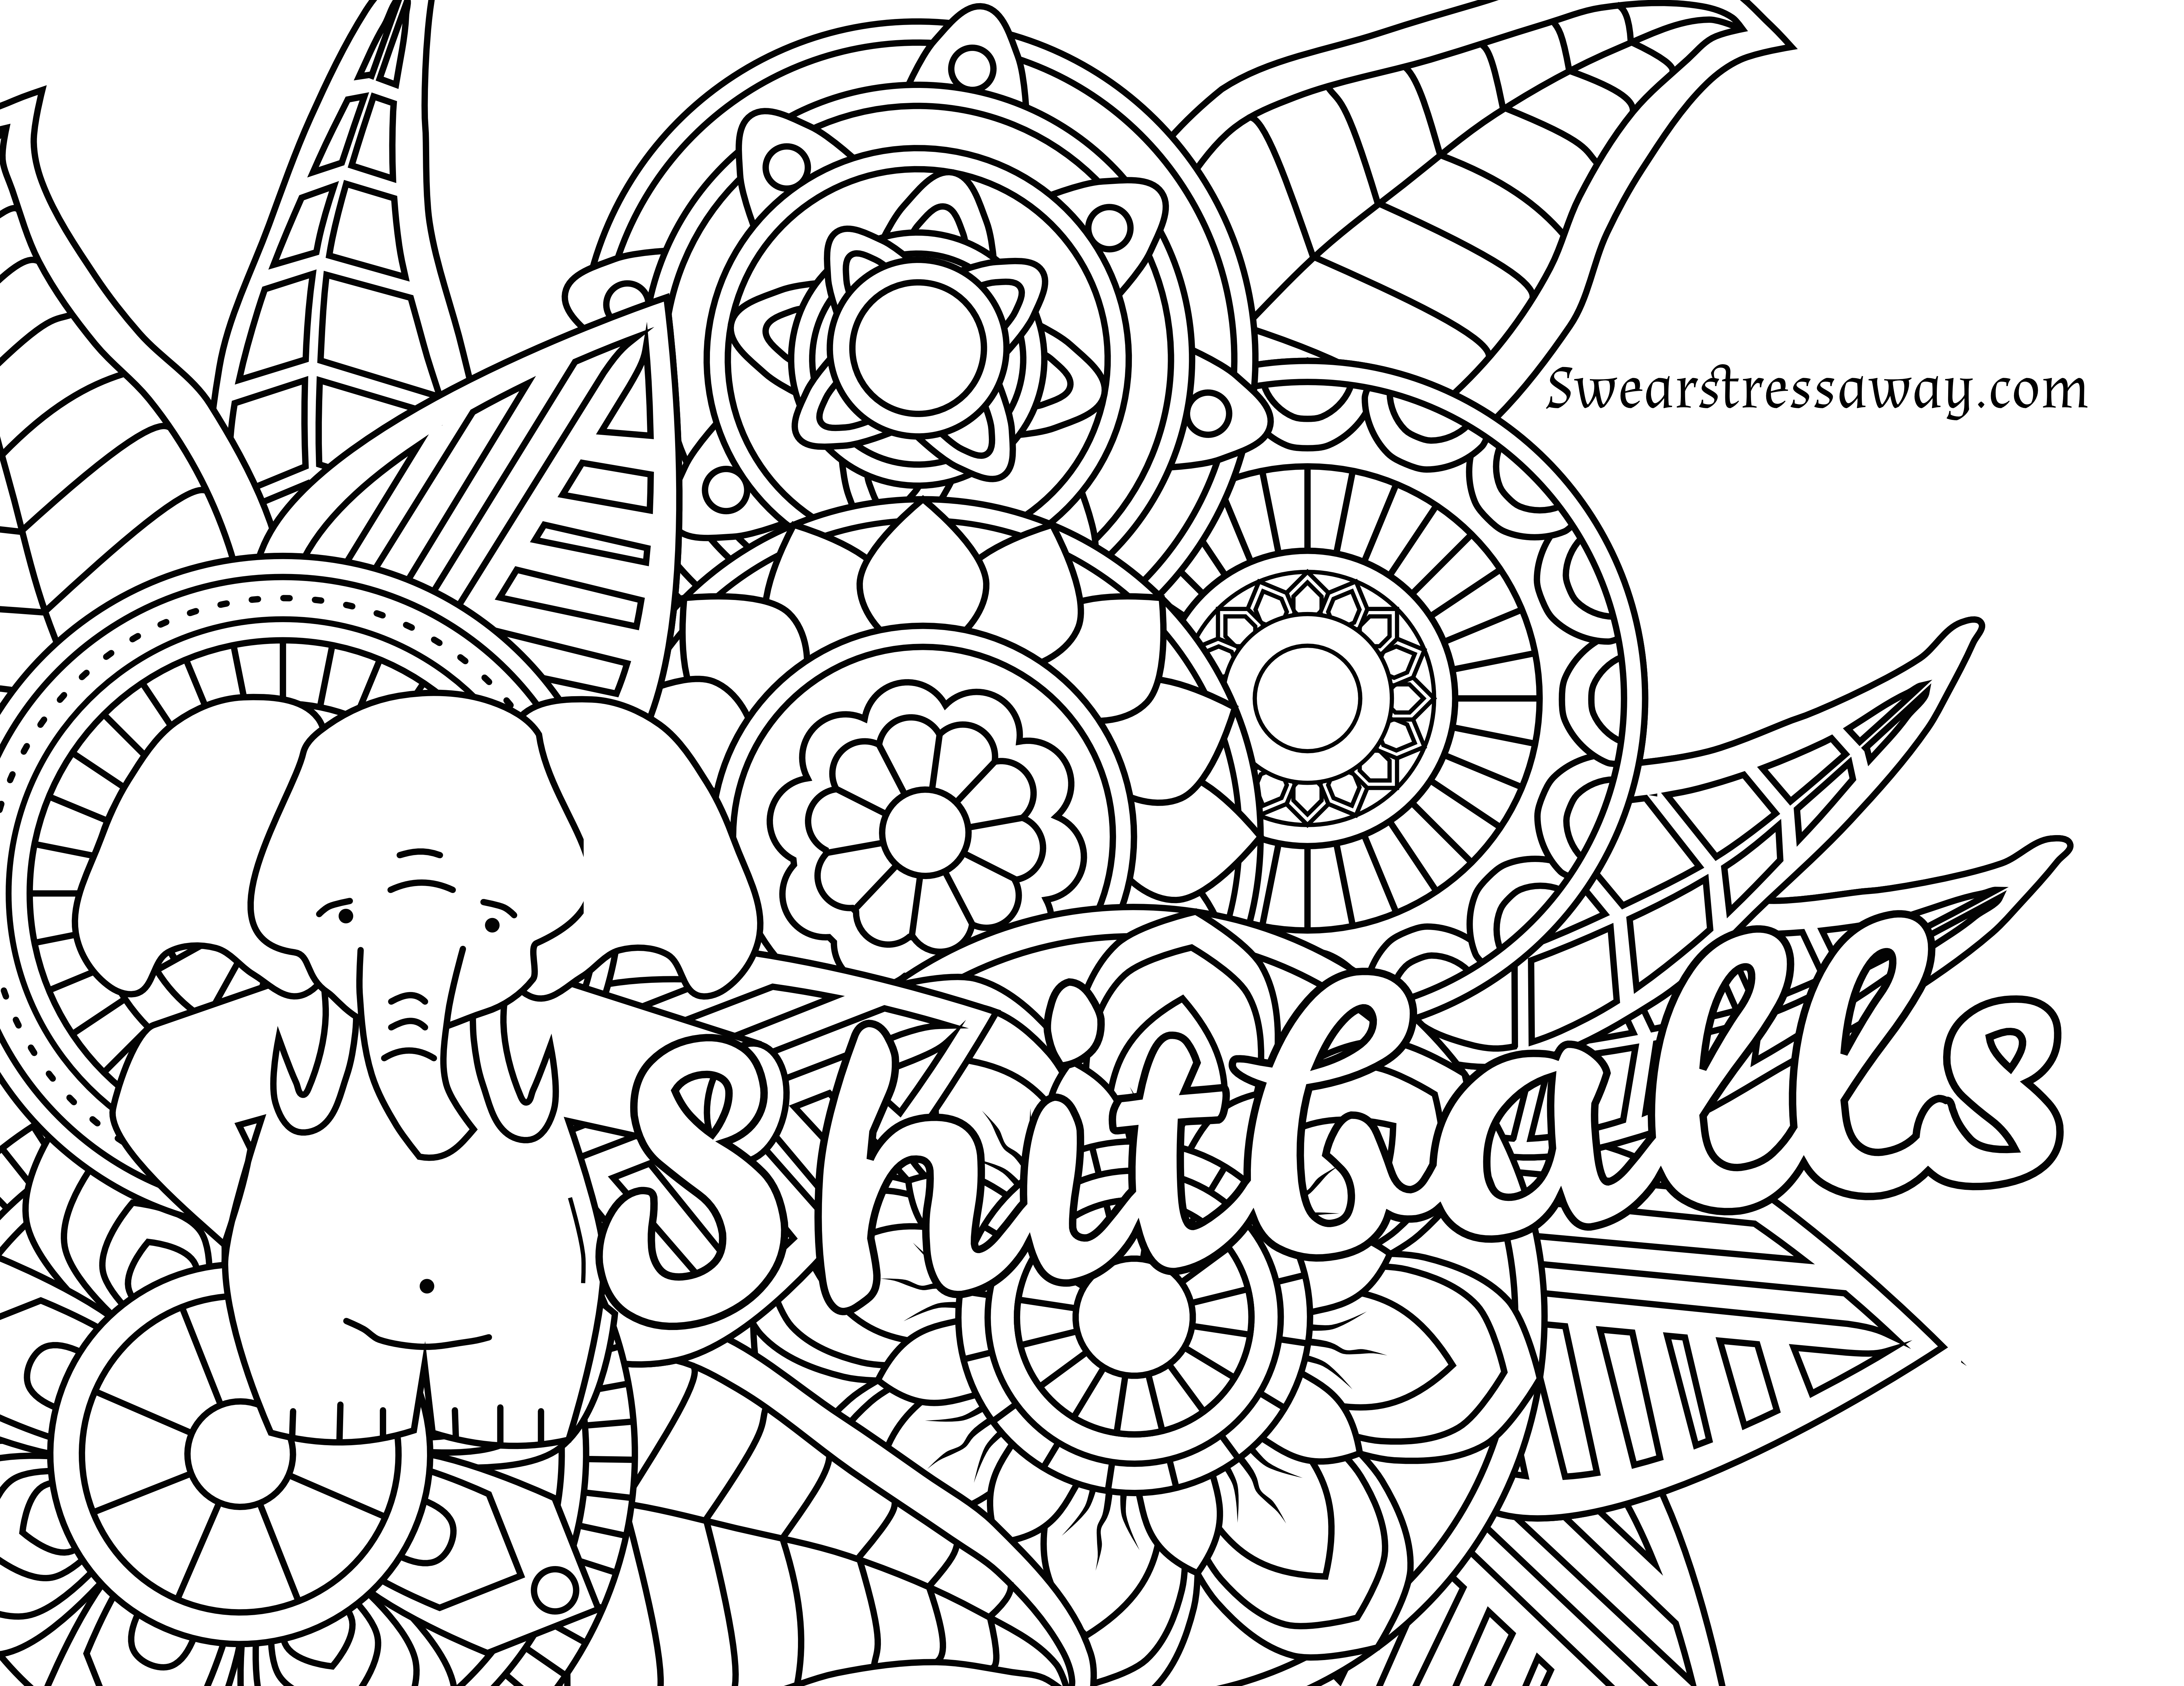 cool printable coloring pages for adults adult coloring pages coloringrocks printable adults for cool pages coloring